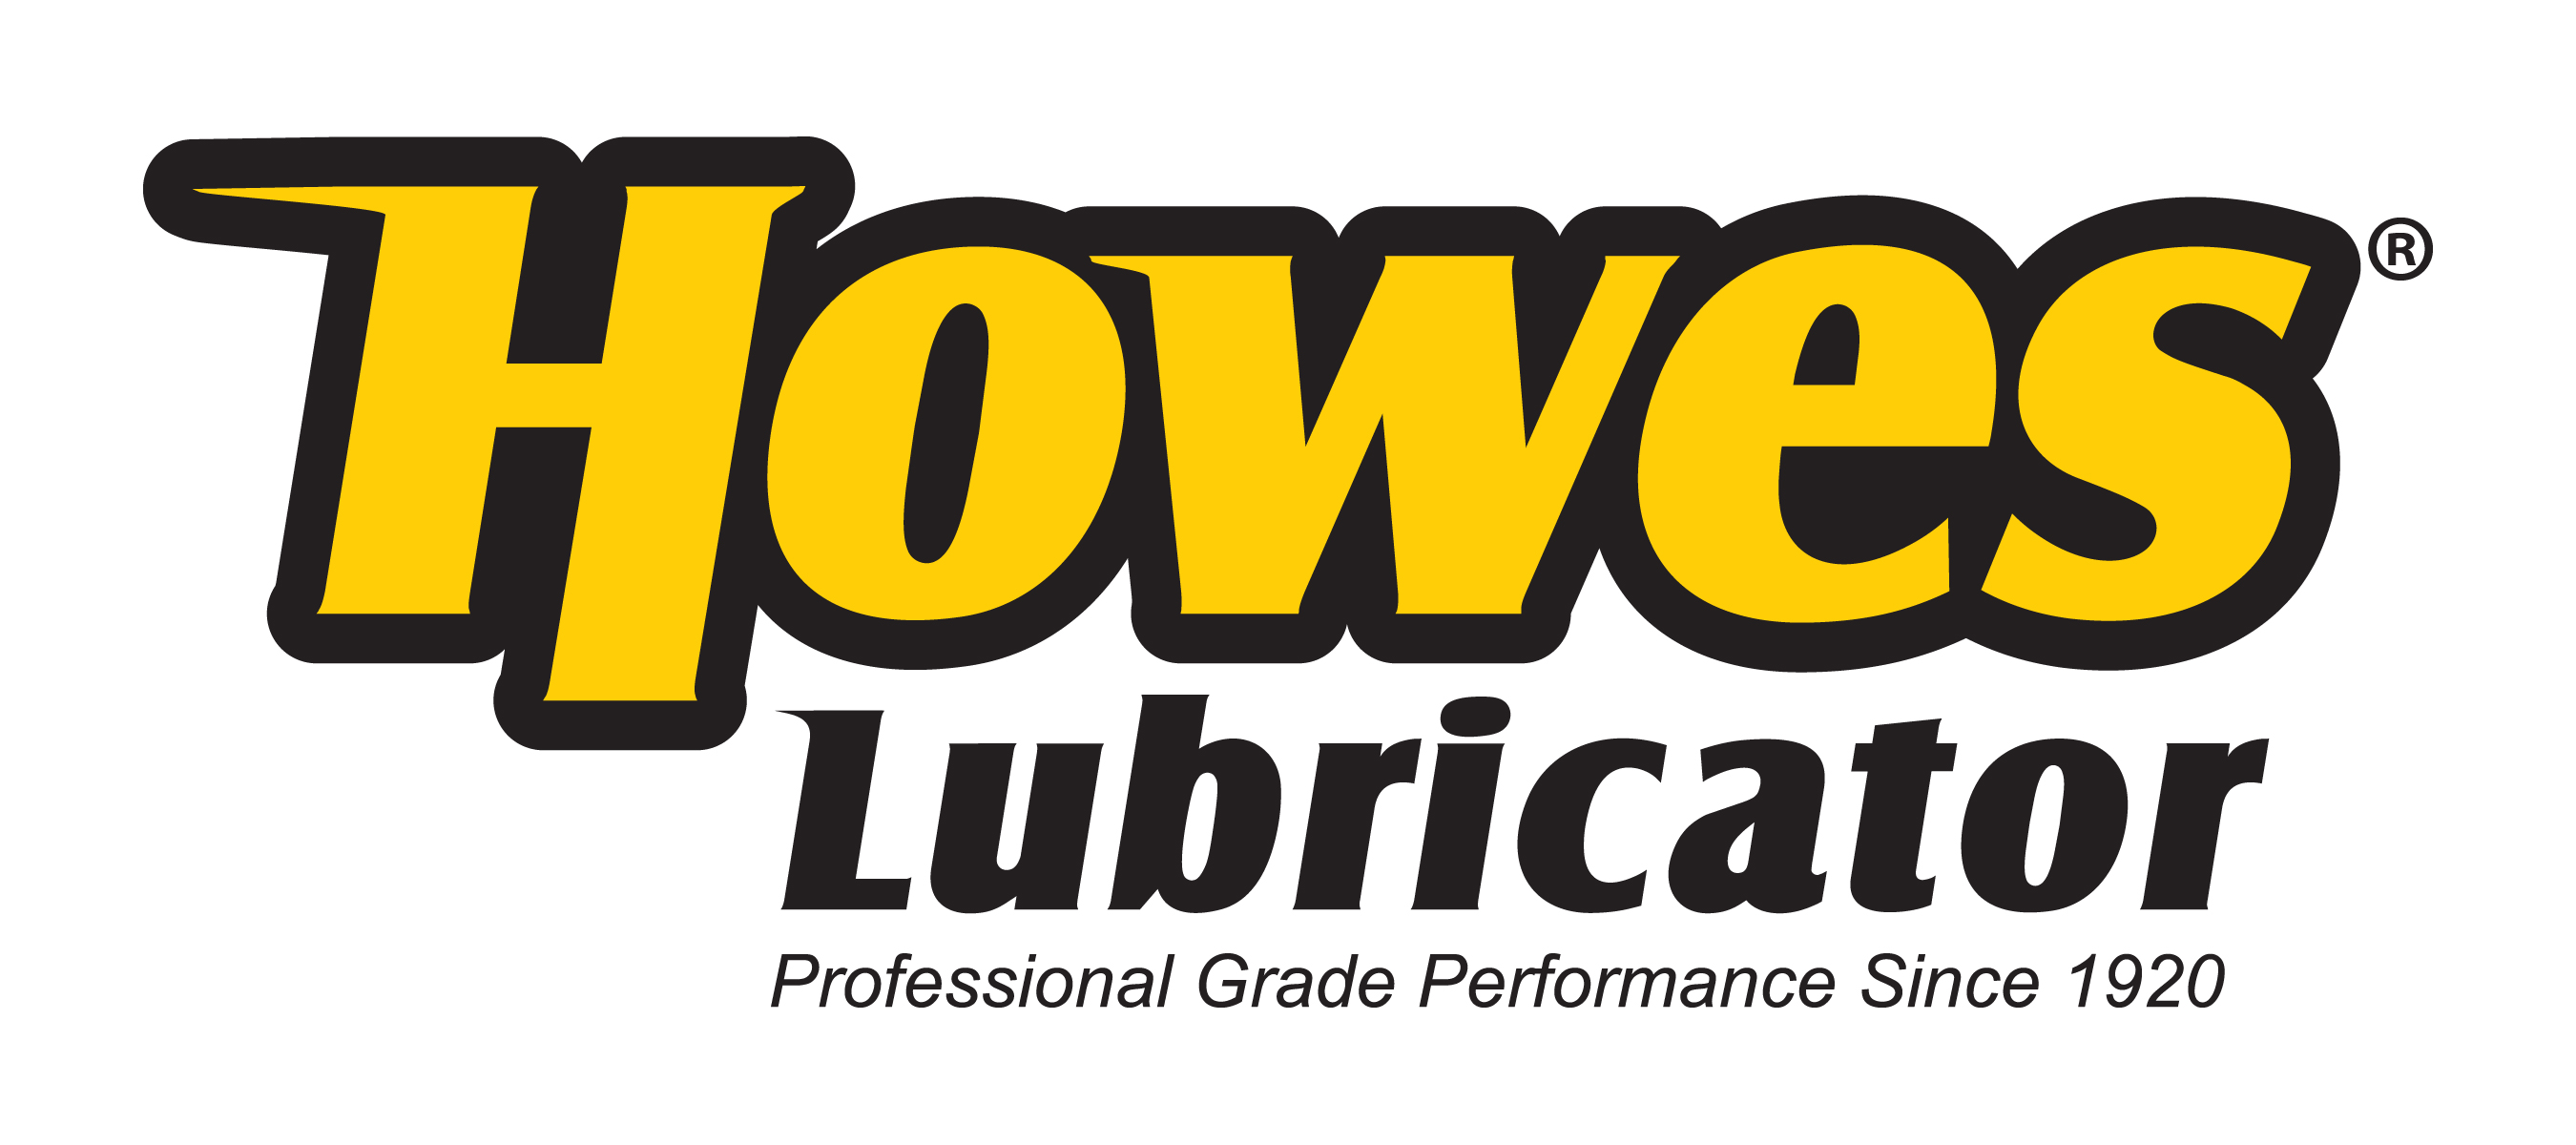 Howes Lubricator Logo